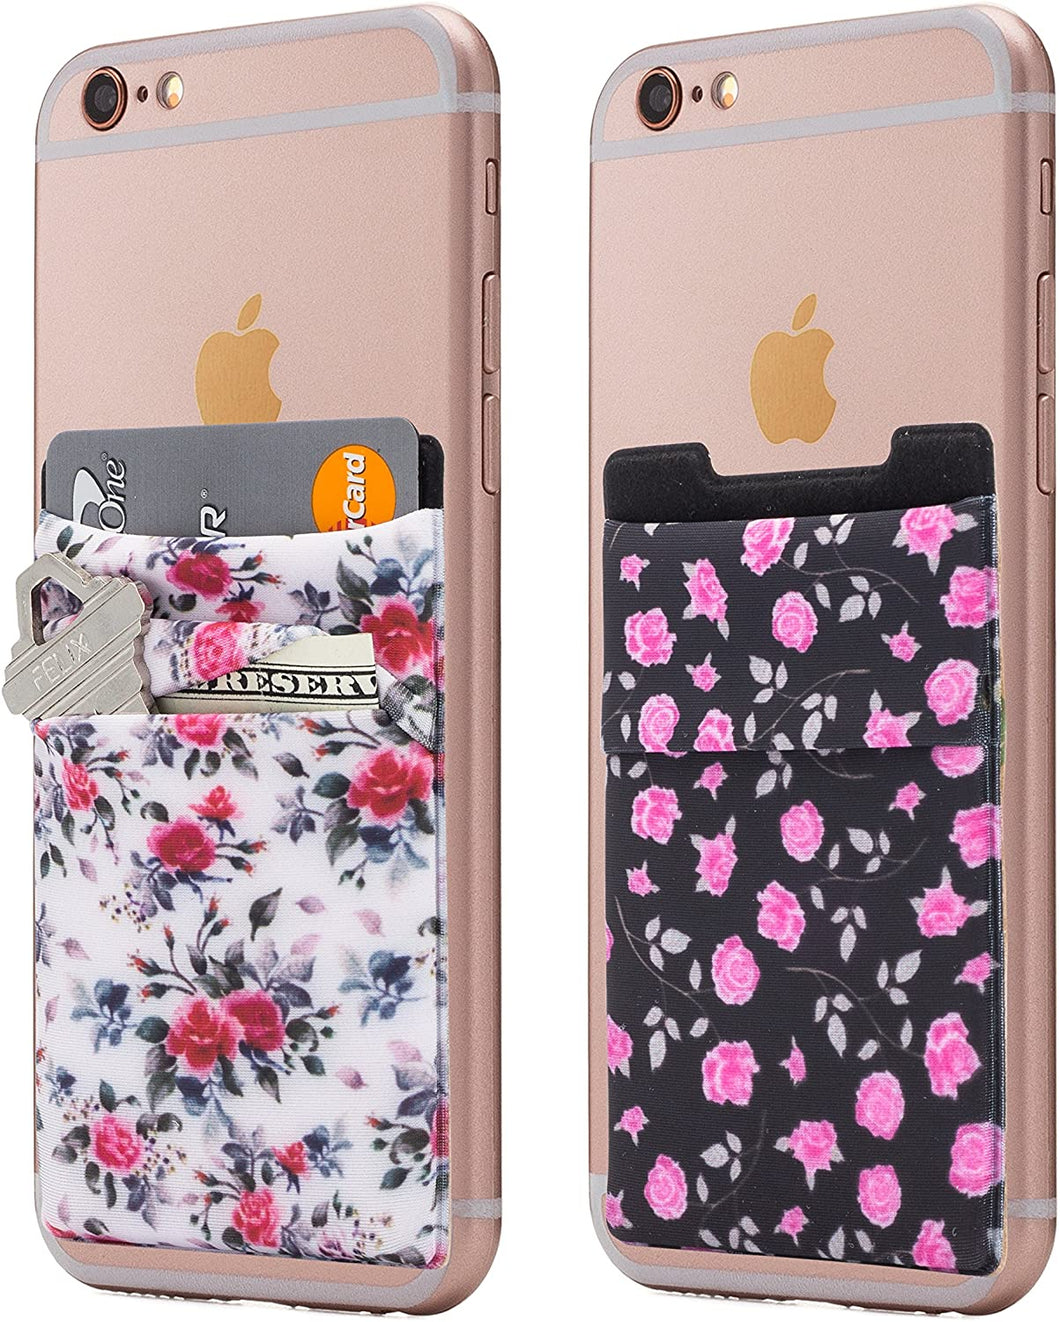 (Two) Stretchy Cell Phone Stick On Wallet Card Holder Phone Pocket for iPhone, Android and All Smartphones.